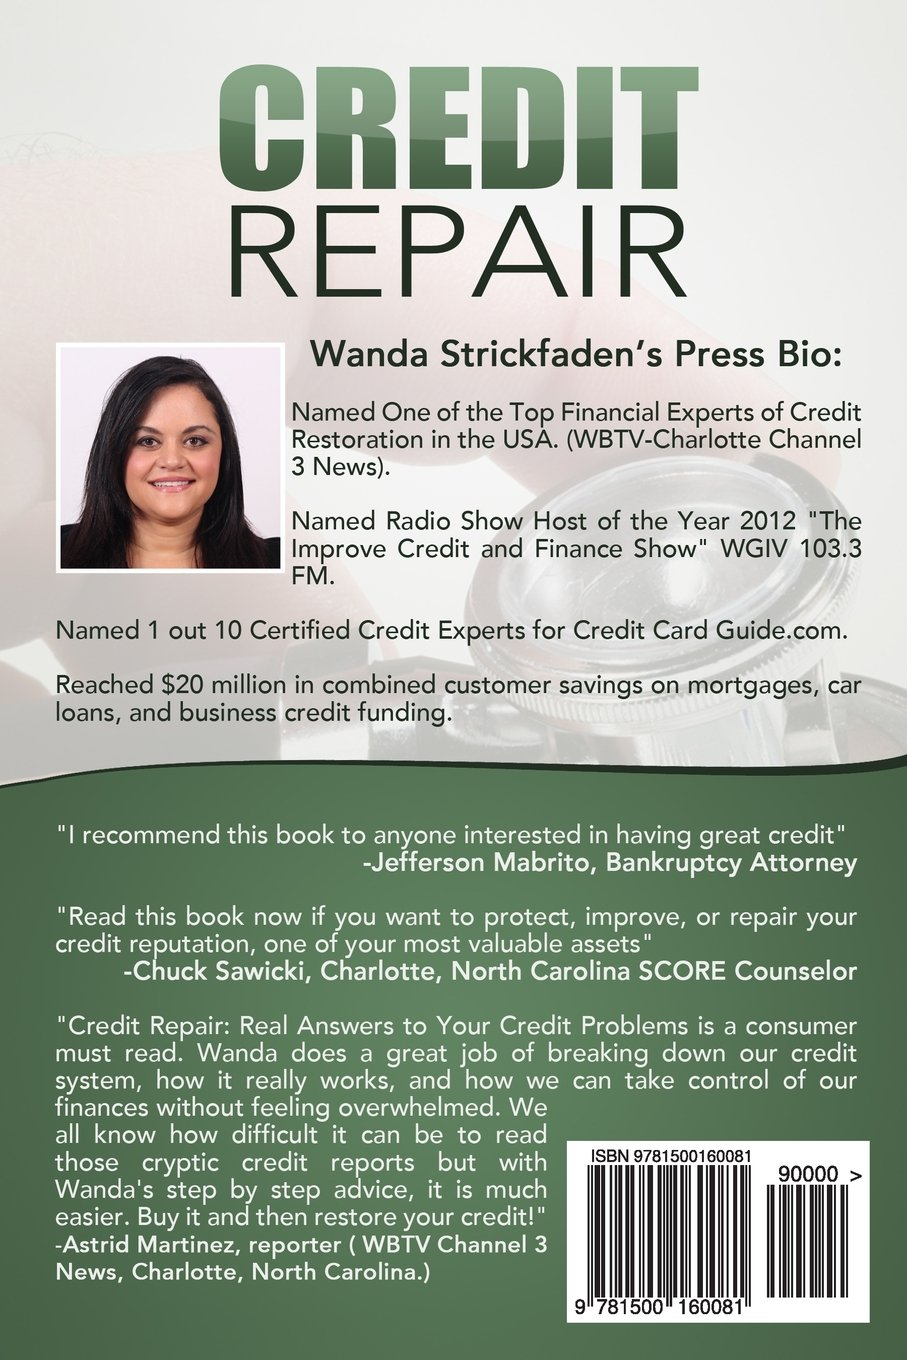 Credit repair real answers to your credit problems all time best credit repair real answers to your credit problems all time best selling book wanda strickfaden 9781500160081 amazon books colourmoves